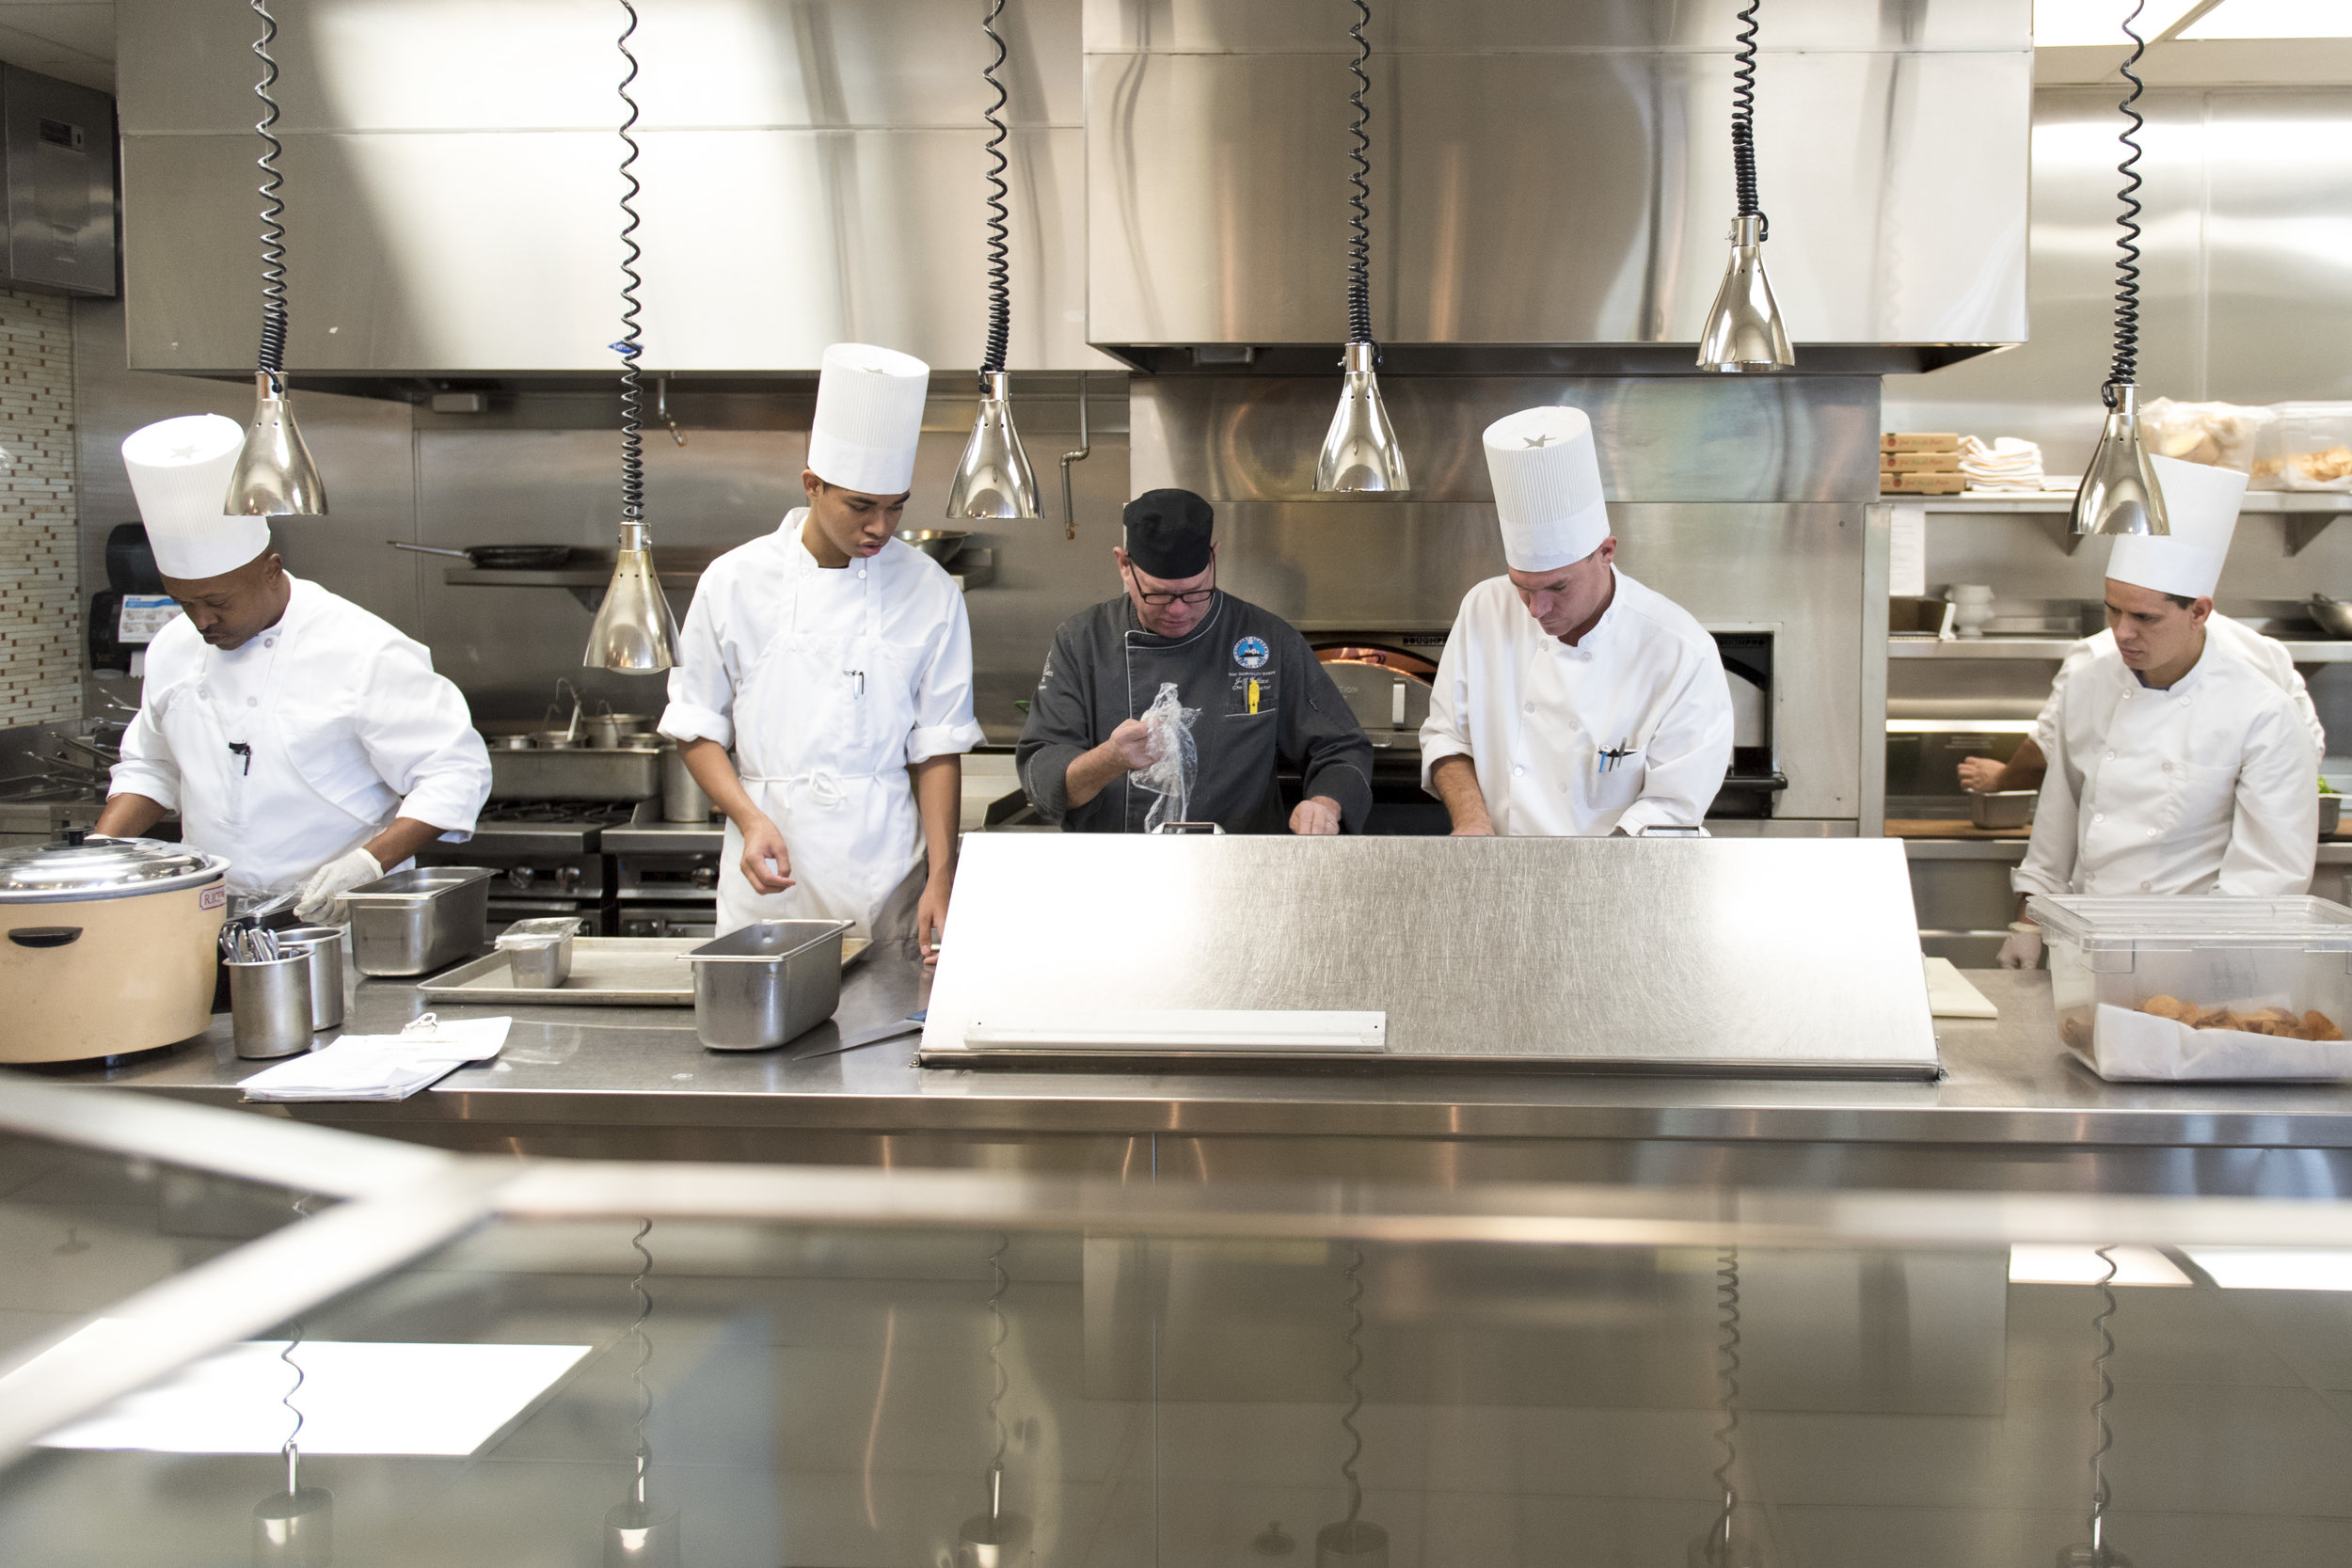 Instructor Jeff Wallace, center, teaches students during the Professional Cook class at the Culinary Academy of Las Vegas.